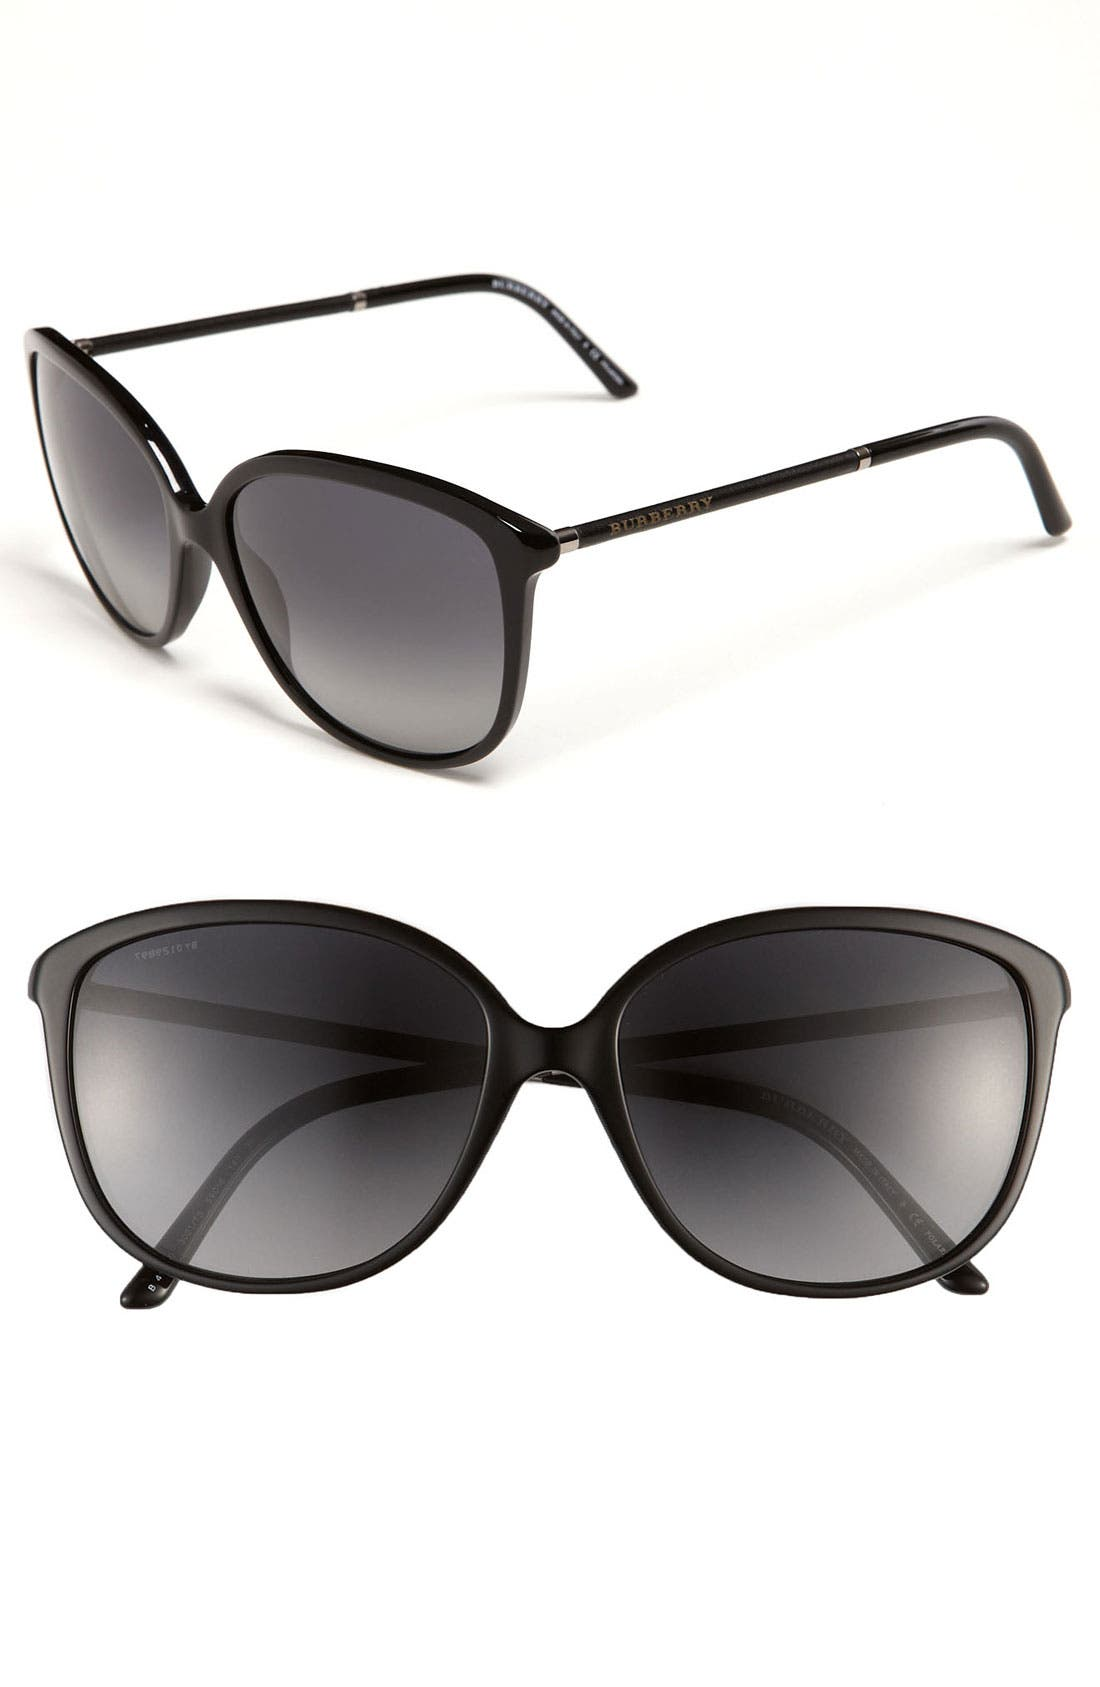 Main Image - Burberry Retro Polarized Sunglasses